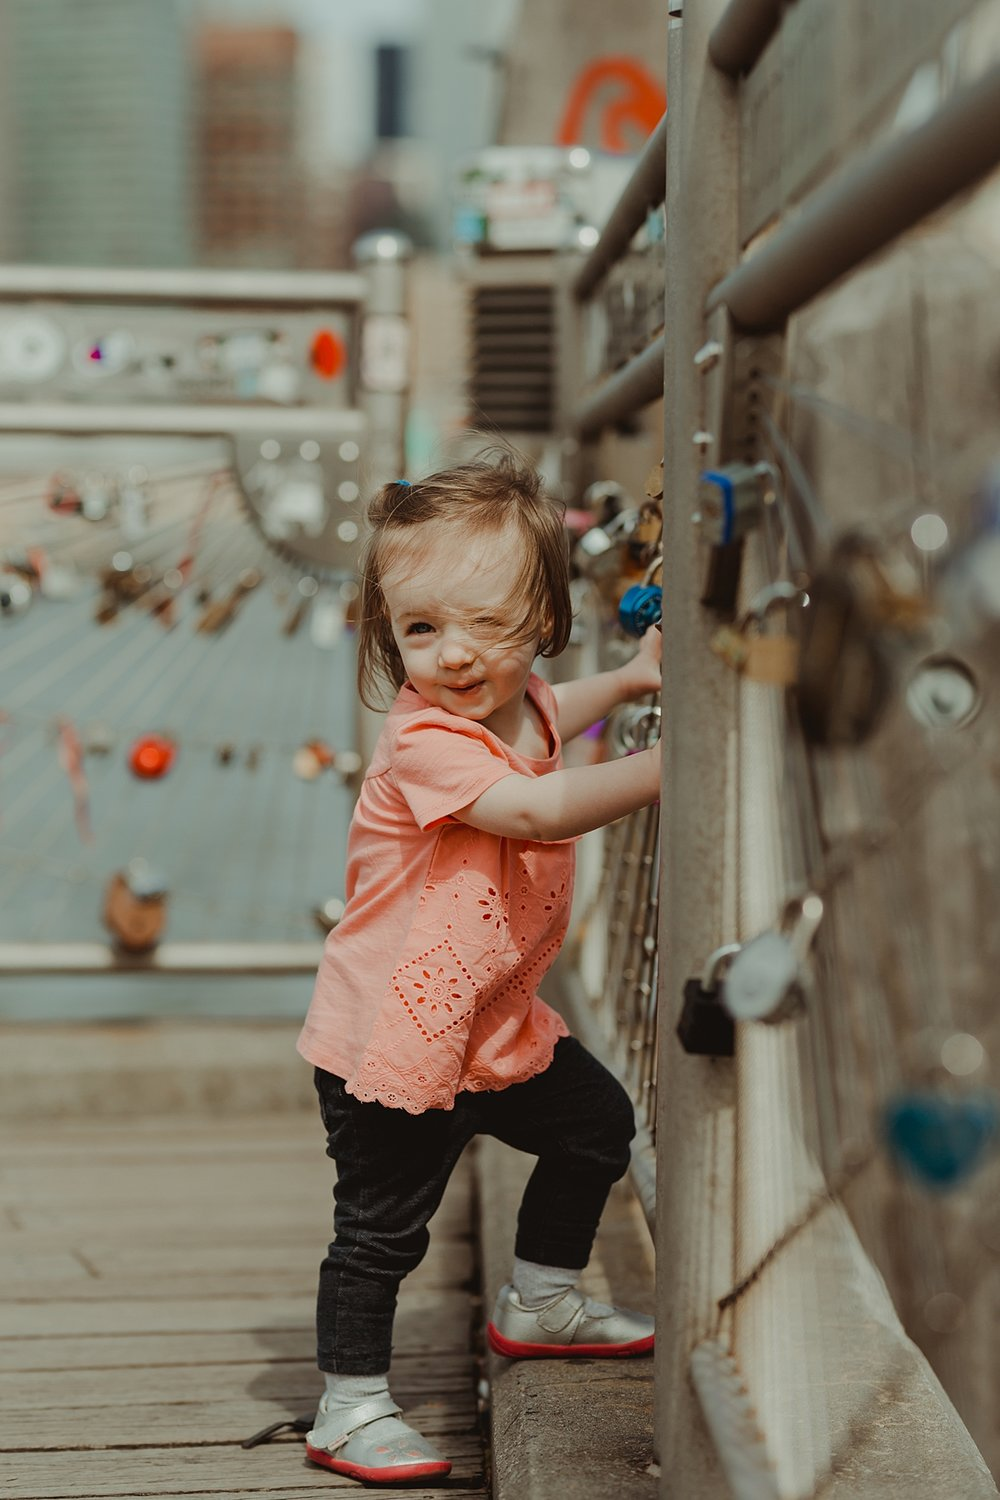 candid portrait of young daughter in pink shirt playing with the love locks at brooklyn bridge park. photo by nyc family and newborn photographer krystil mcdowall